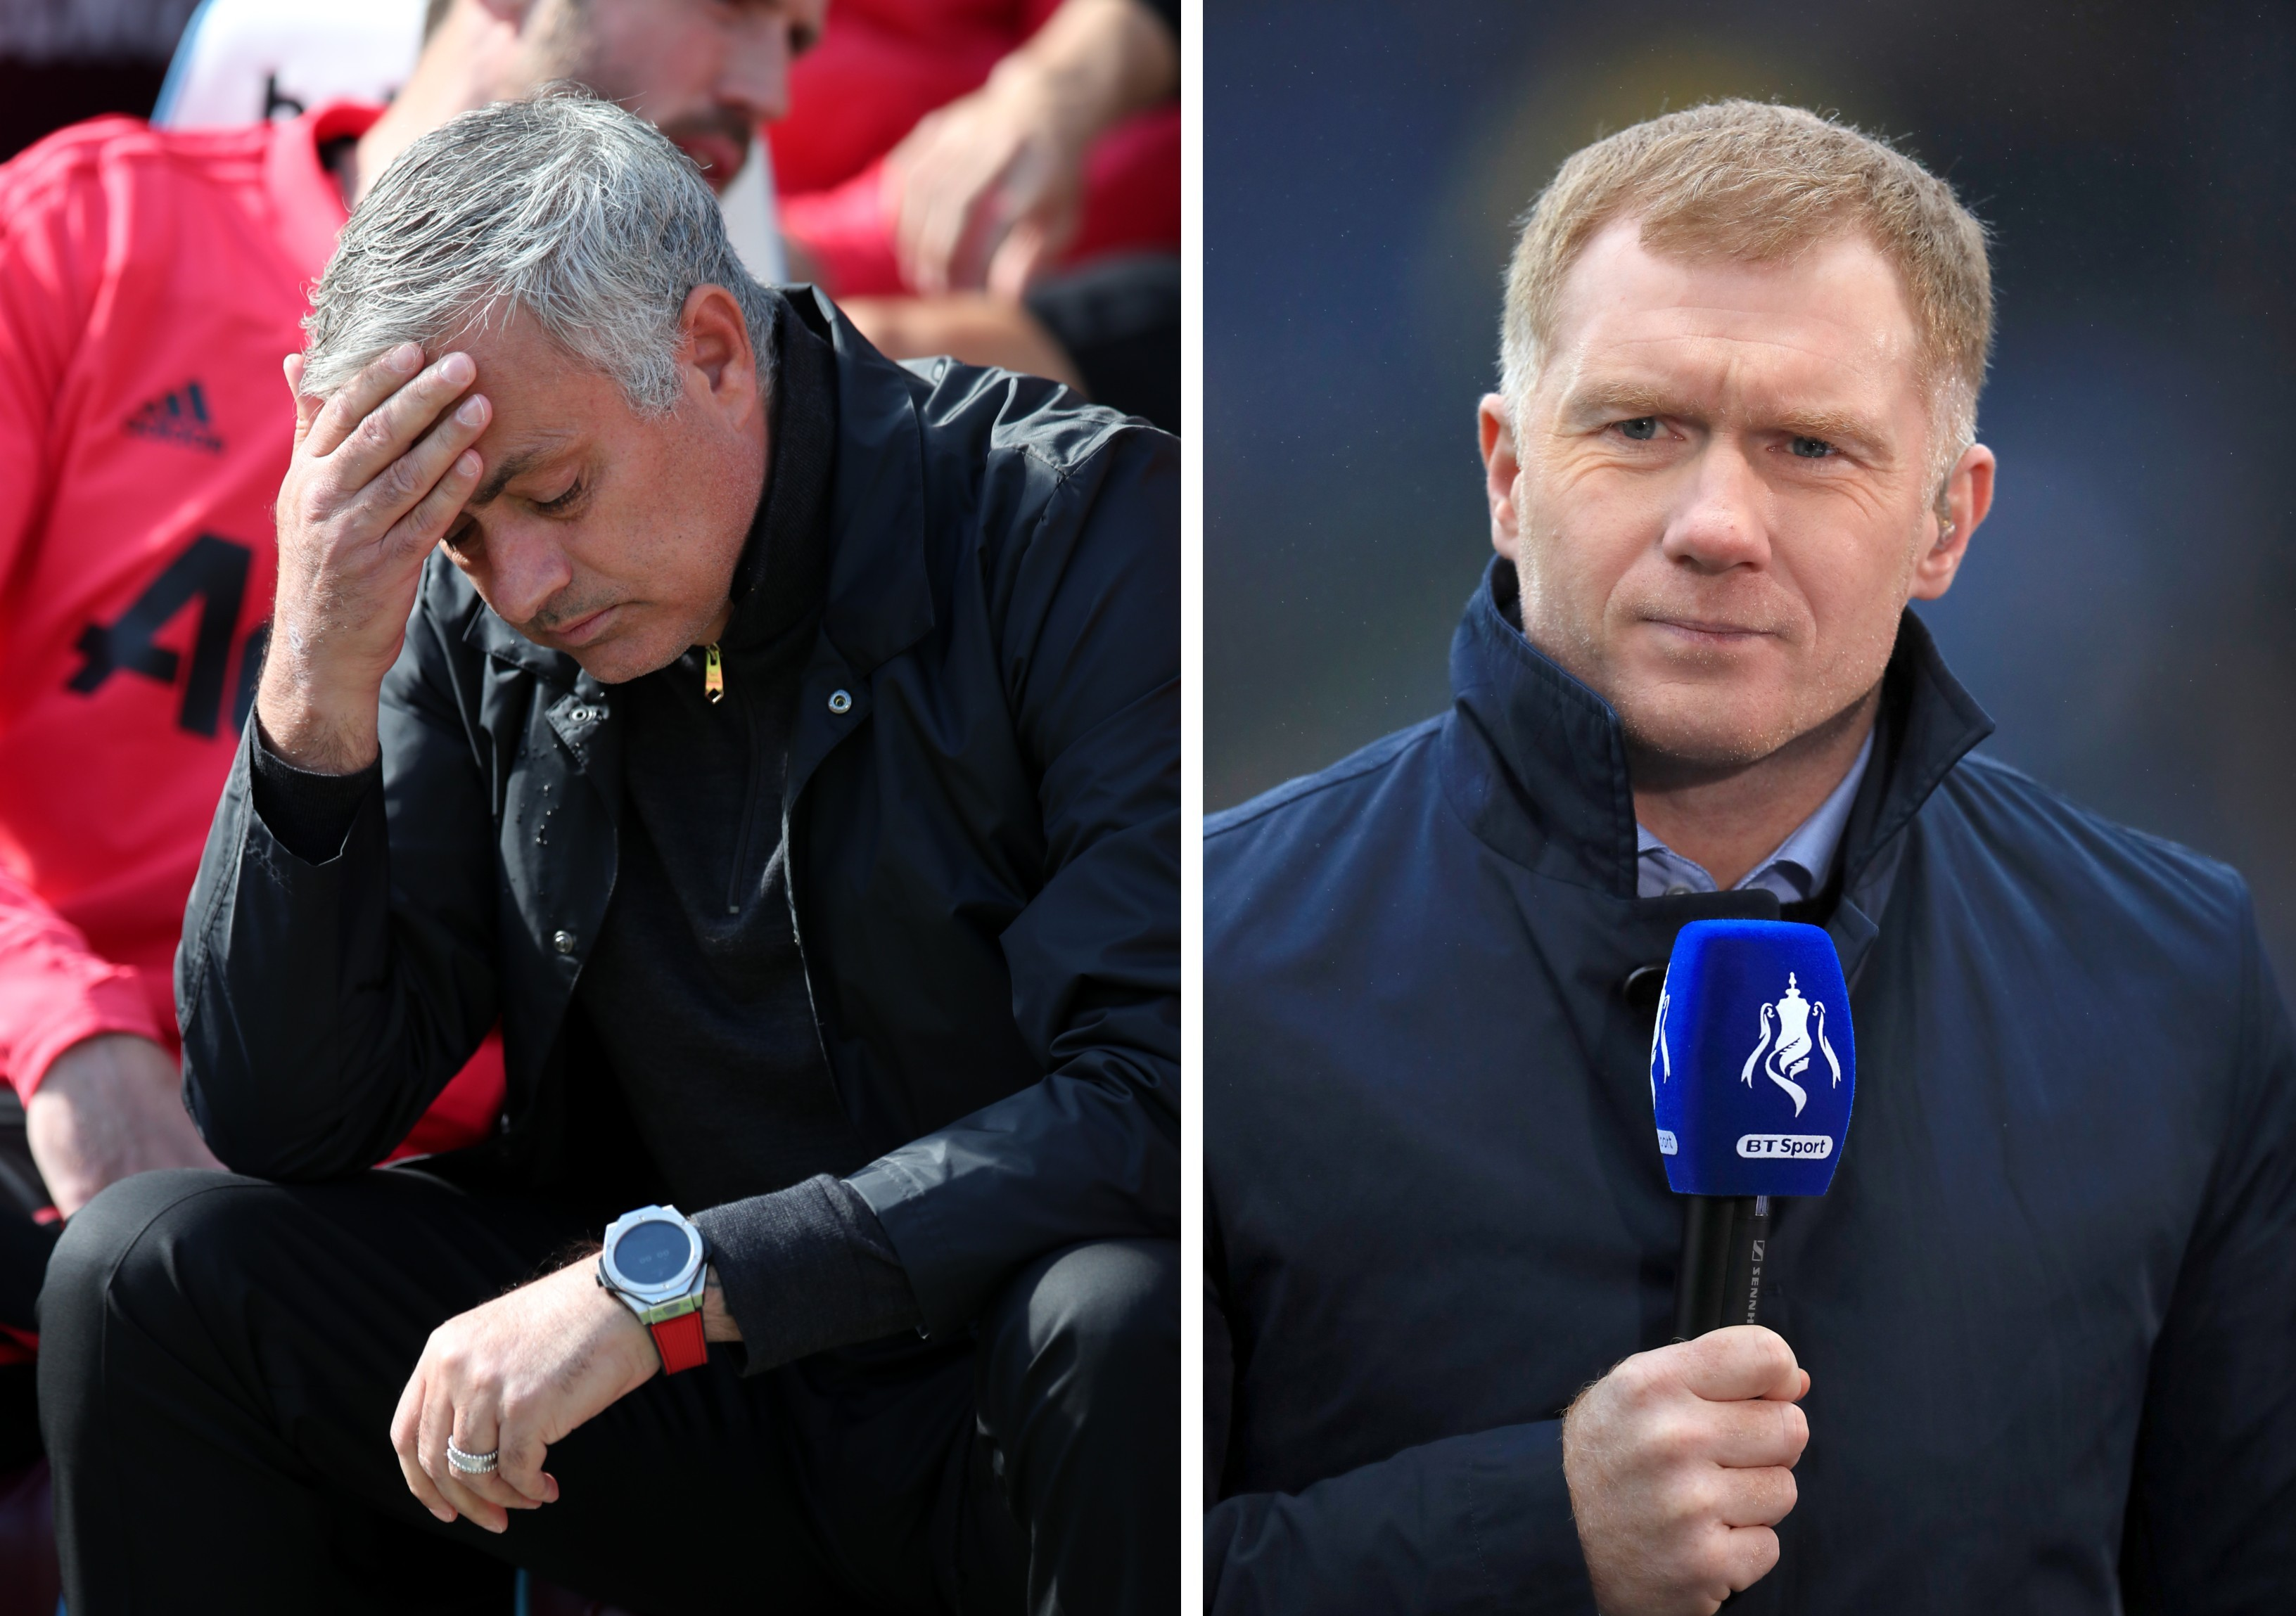 Scholes Pulls Out The Punches On Mourinho For 'Embarrassing' Manchester United